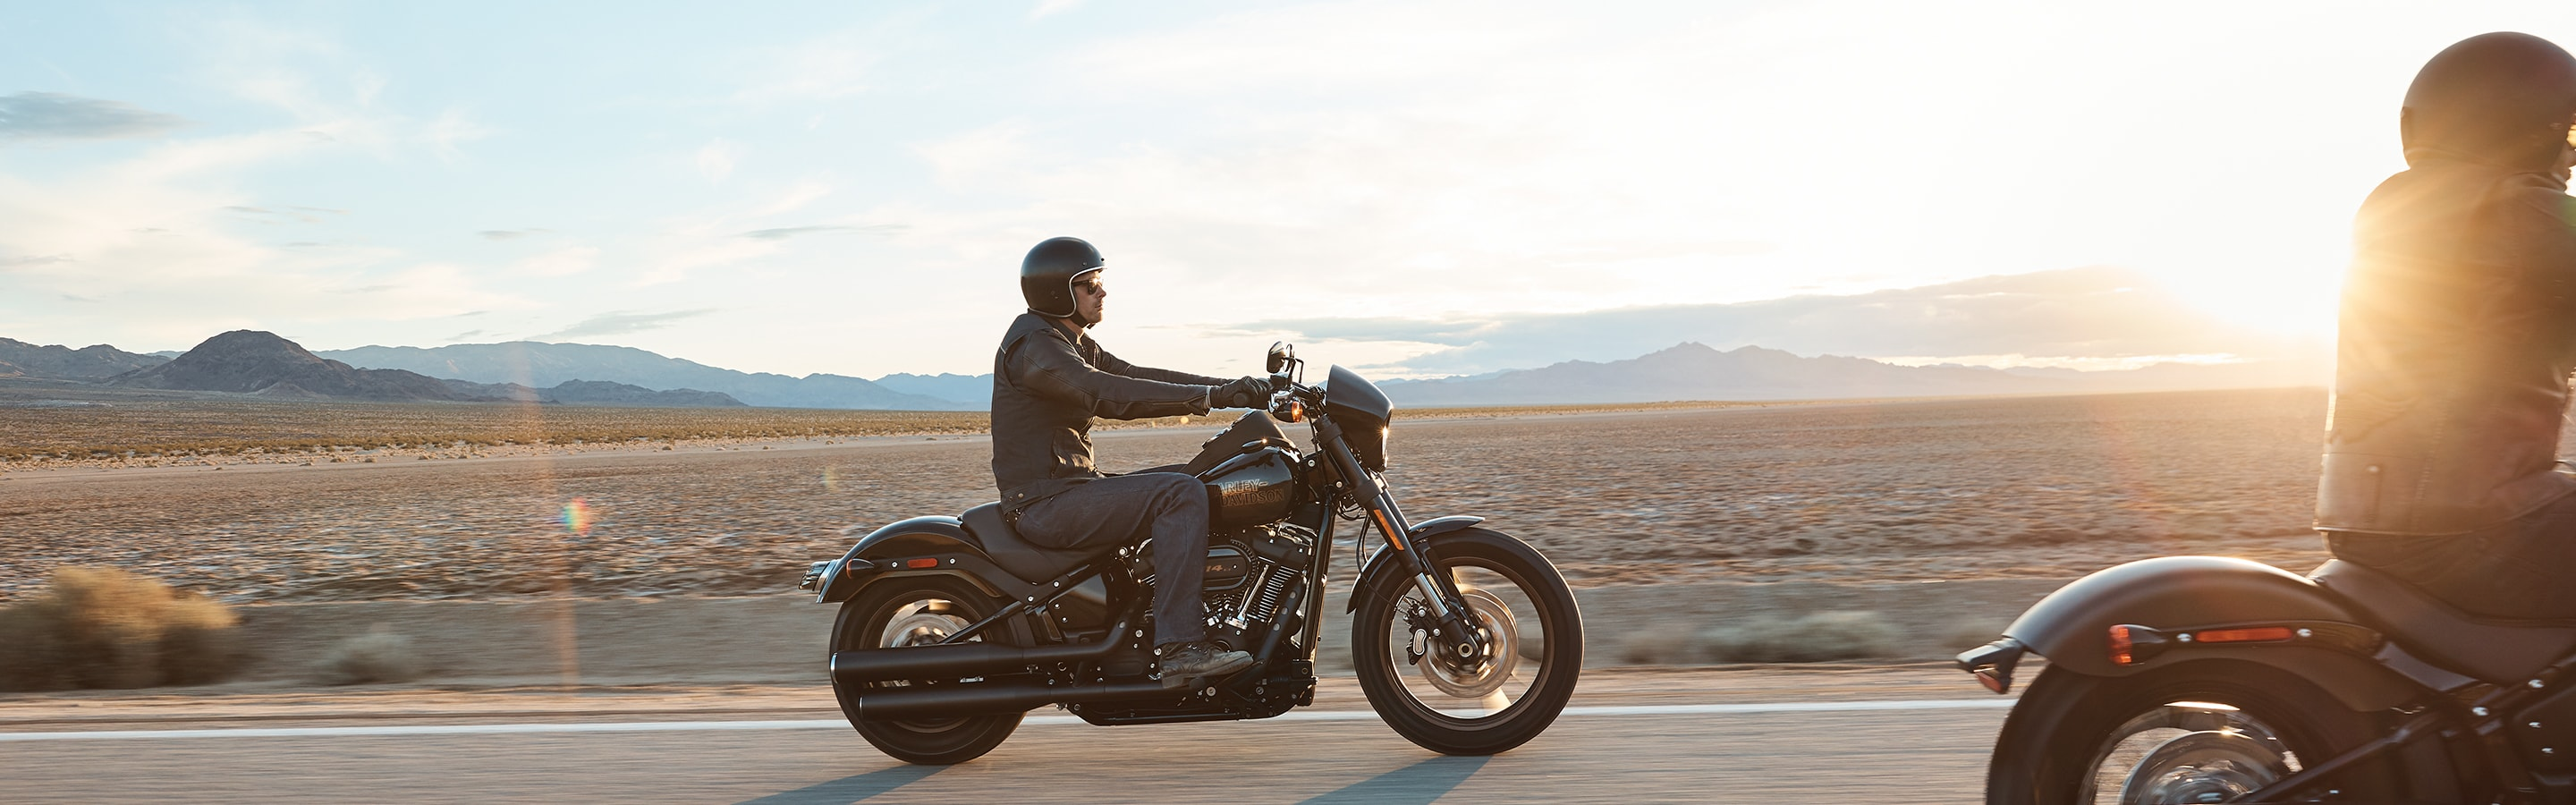 Man Riding 2020 Harley-Davidson Softail motorcycle